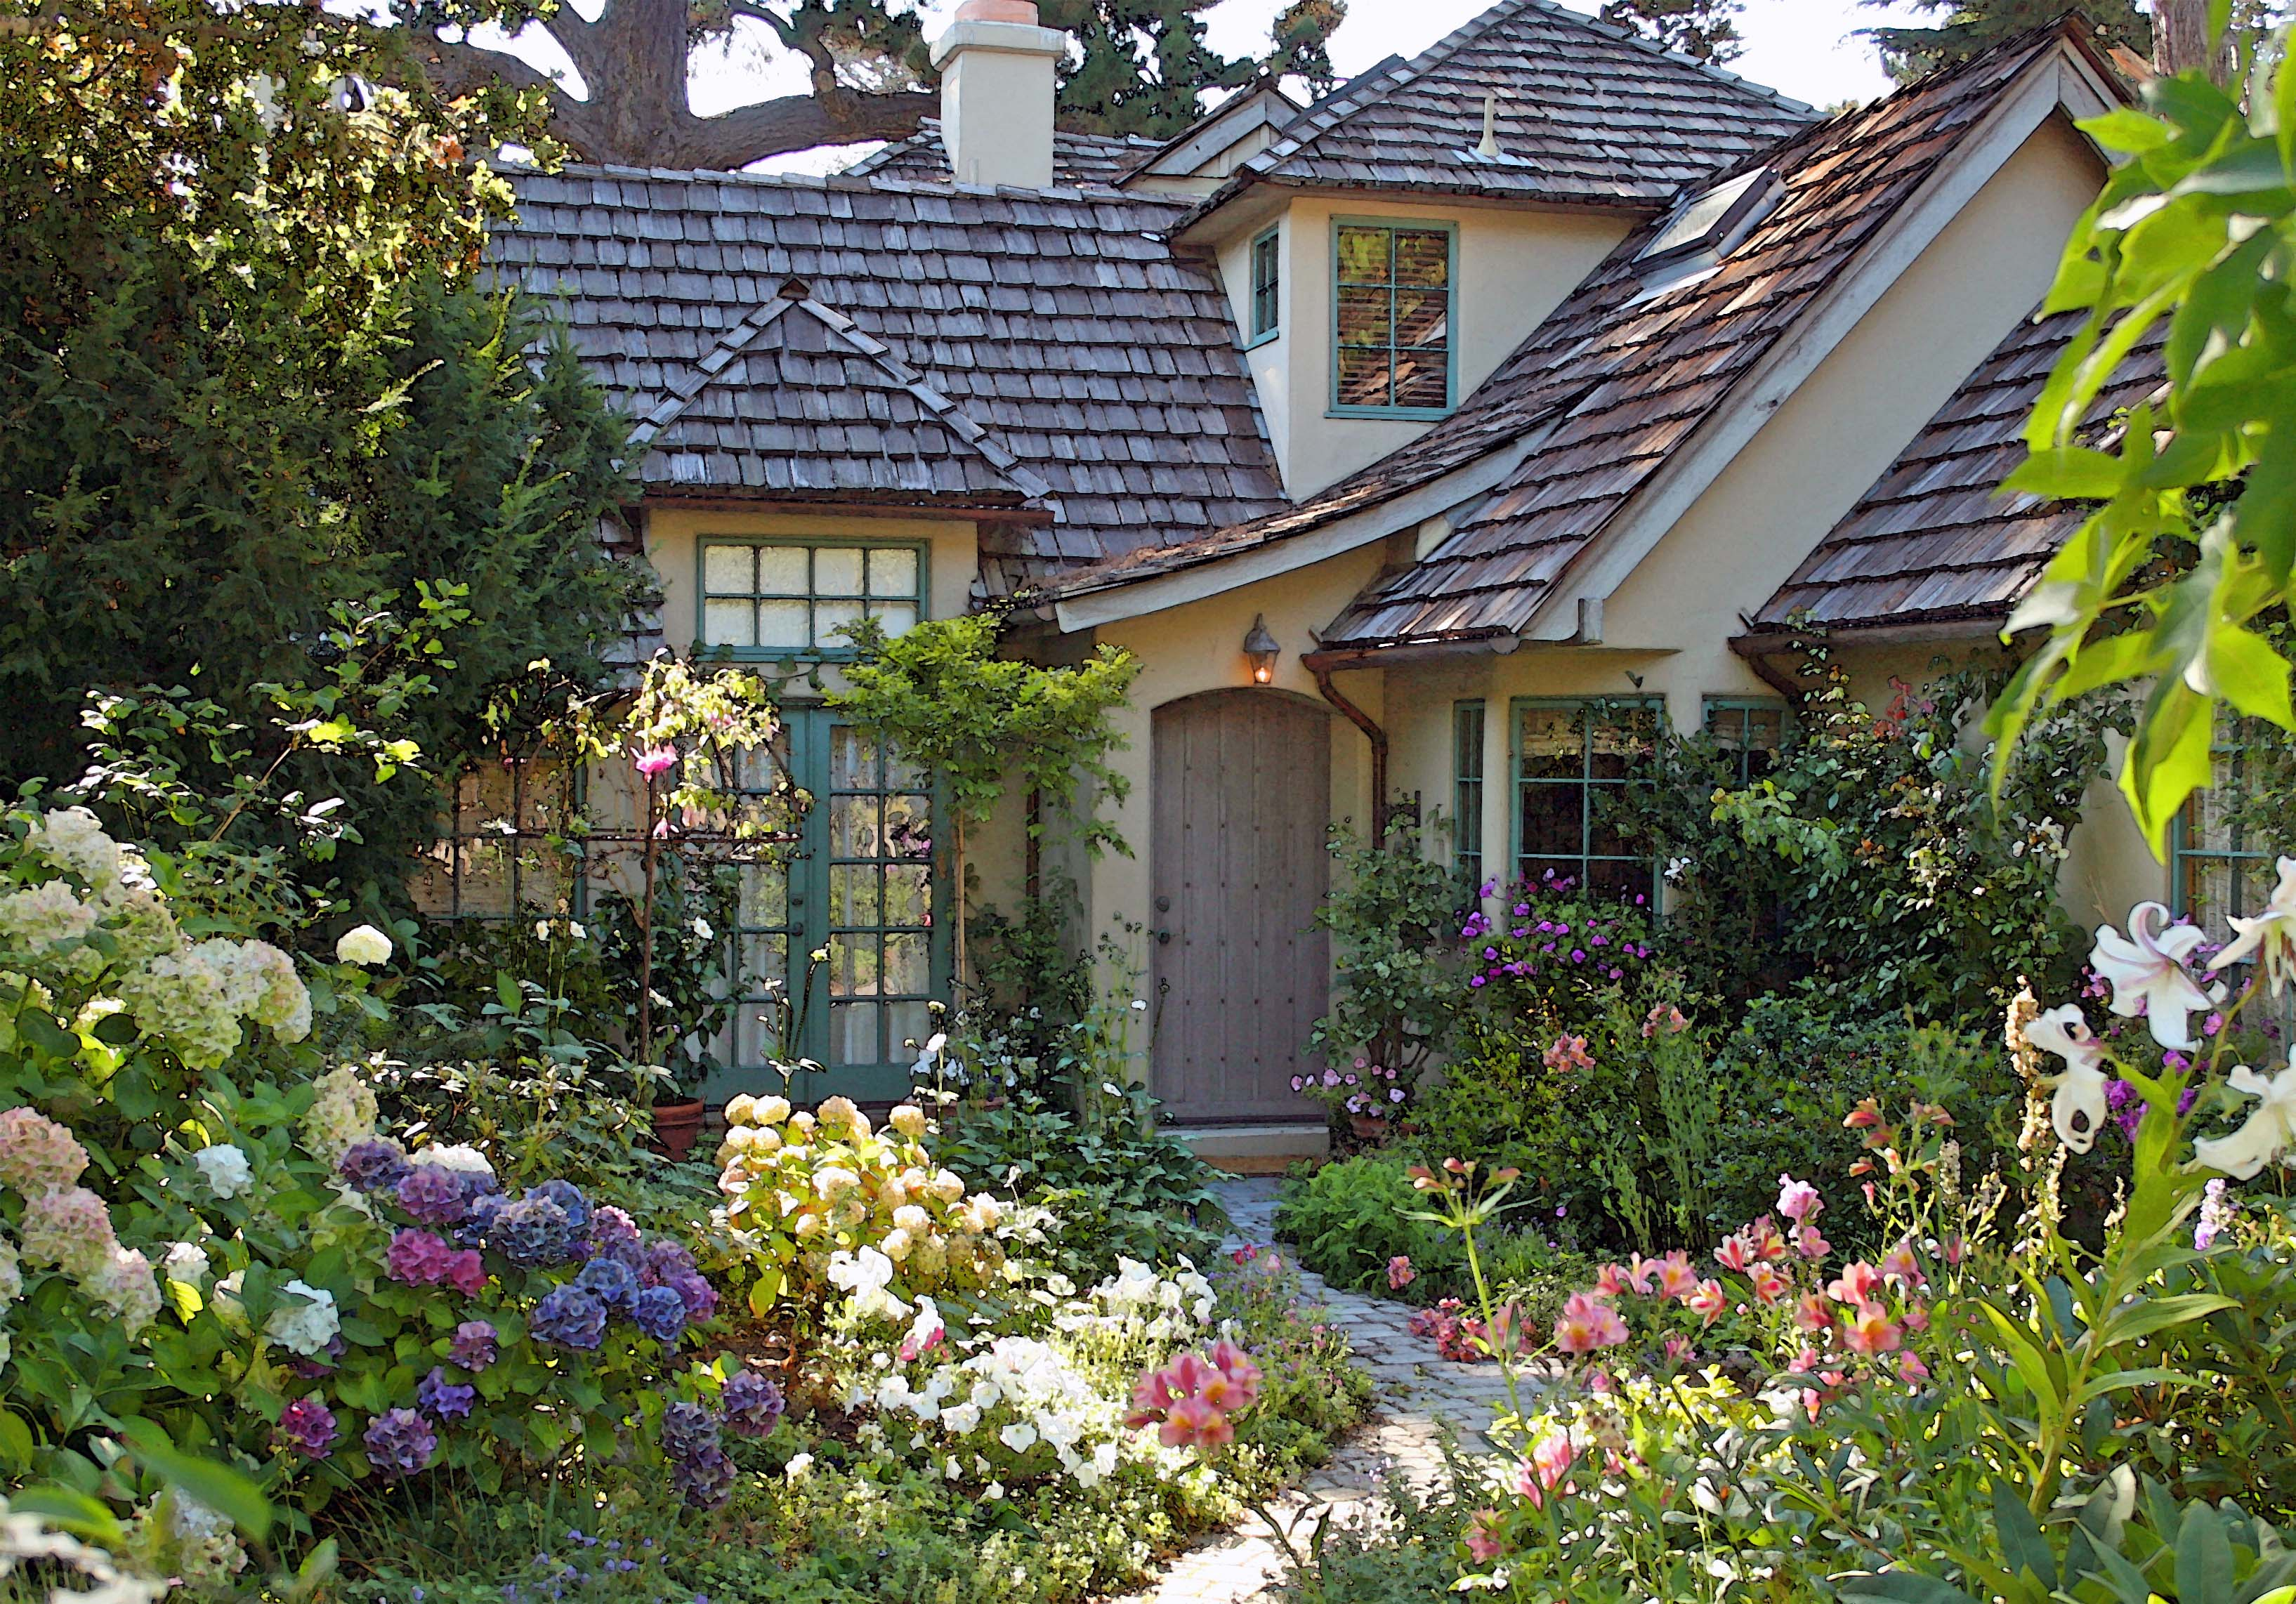 I TOUR THE CARMEL GARDEN OF TERI Winton  Once upon a timeTales from Carmel by the Sea